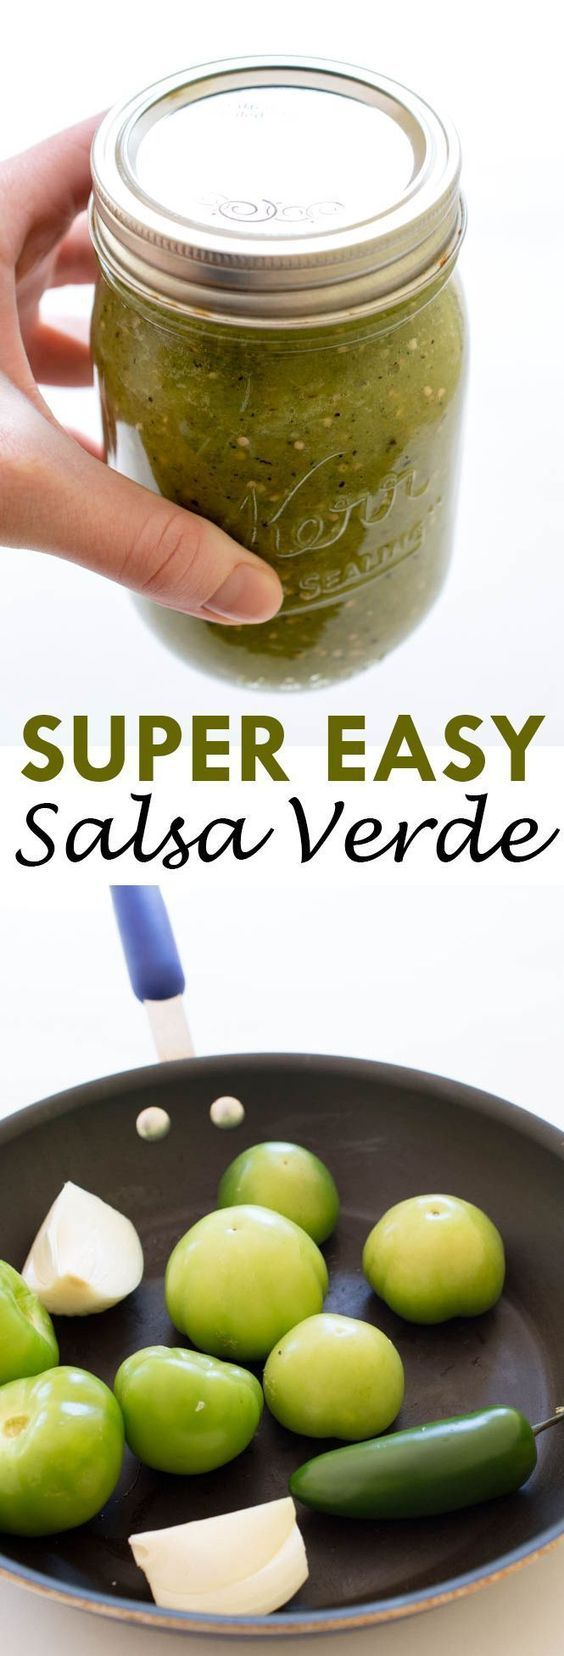 Super Easy Salsa Verde. Pan roasted for extra flavor and pureed with garlic, jalapeno, cilantro and lime juice. Only 7 ingredients! | chefsavvy.